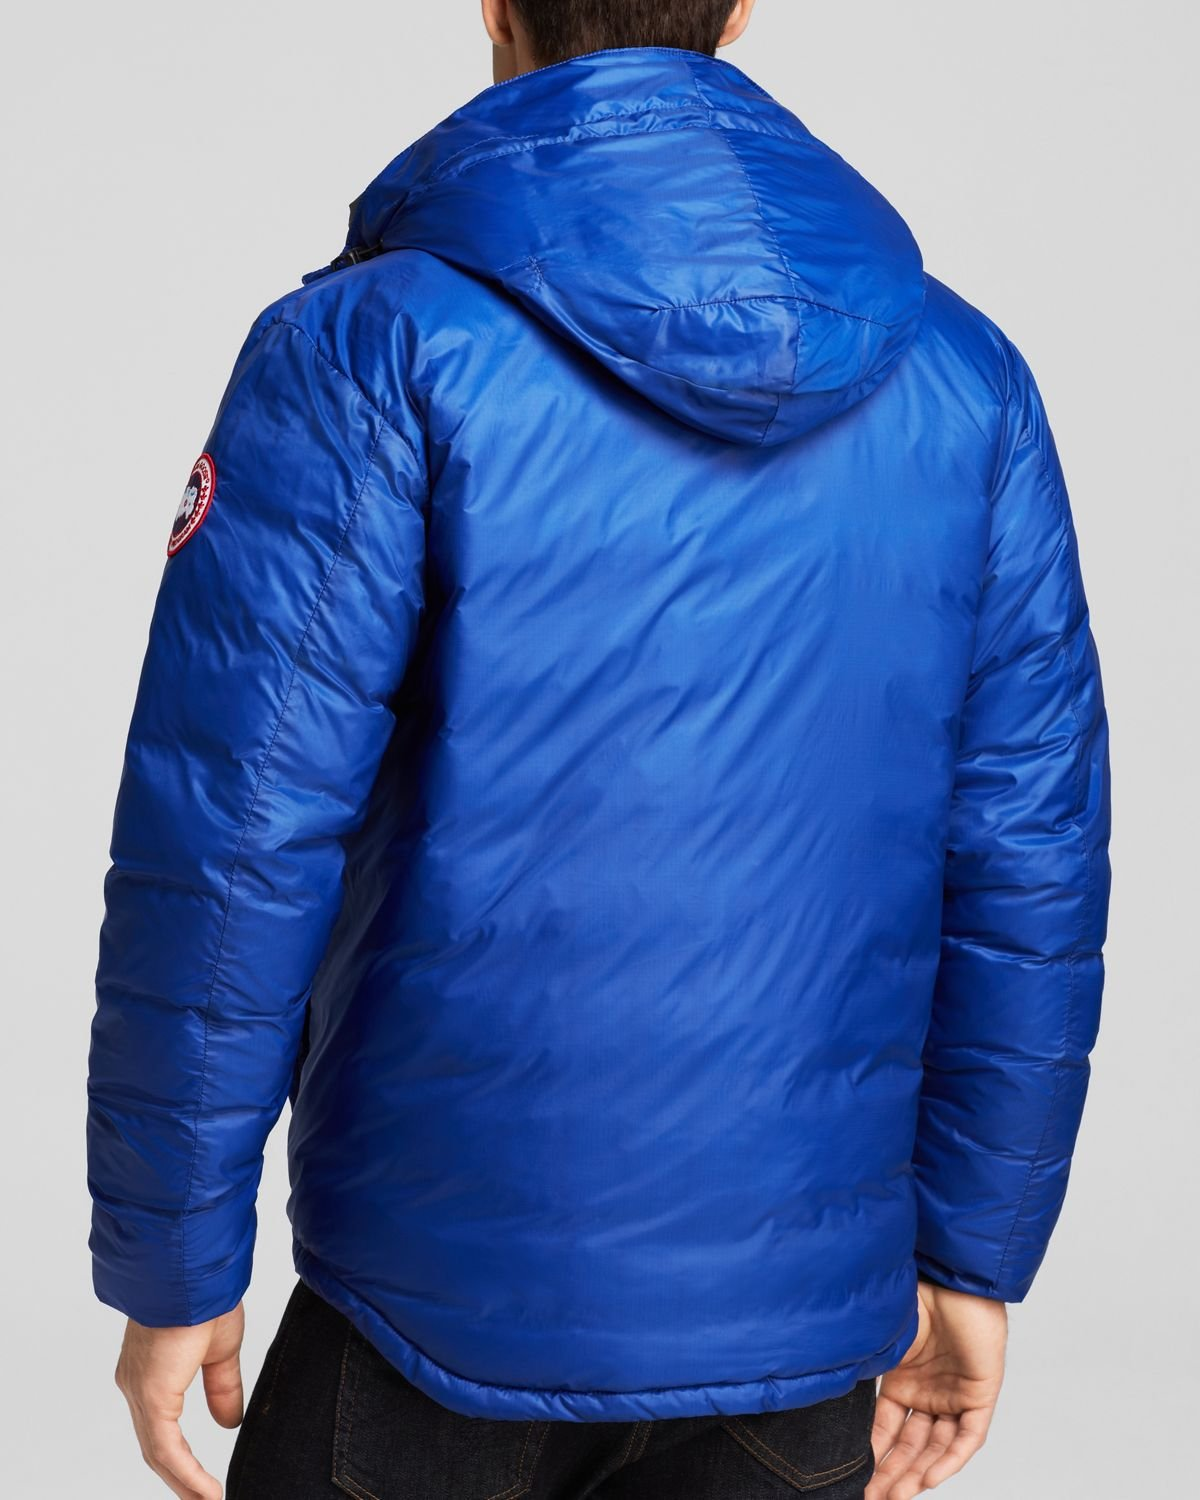 Canada Goose Lodge Down Jacket